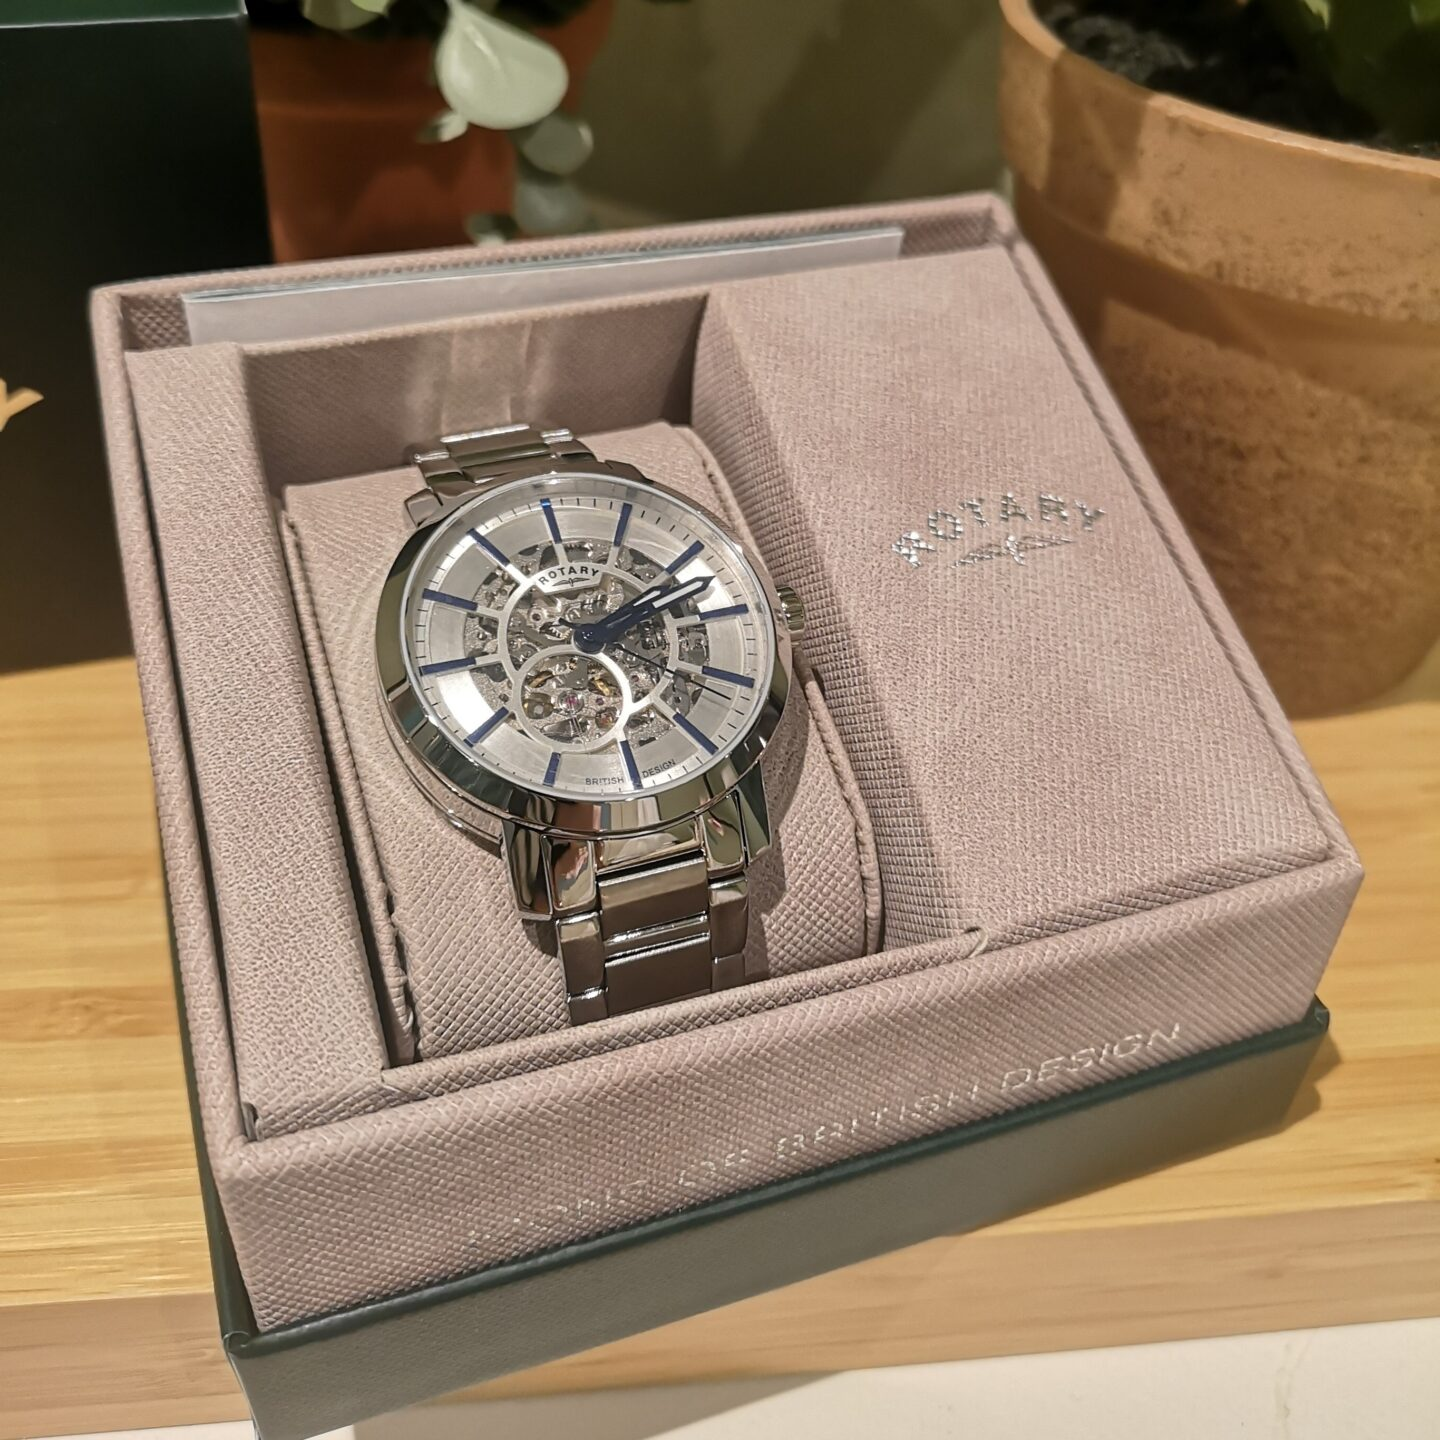 Rotary Greenwich Watch, Rotary Watches, Greenwich Collection, Stainless Steel Watch, Gents Watch, Luxury Watches, Father's Day Giveaway, Win, Competition, the Frenchie Mummy